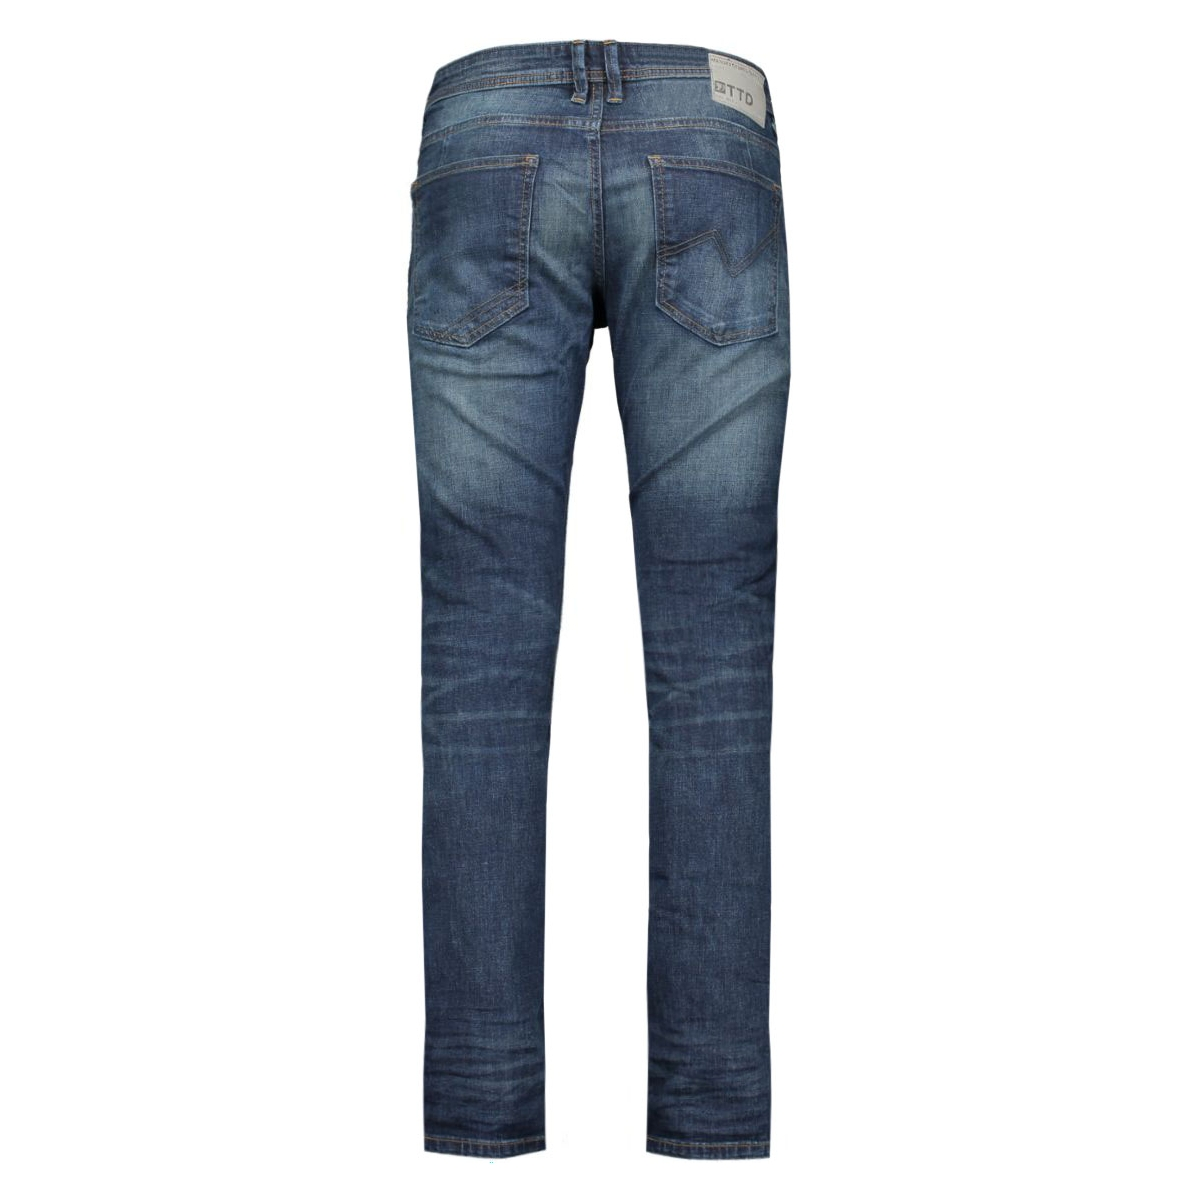 6204968.09.12 tom tailor jeans 1053